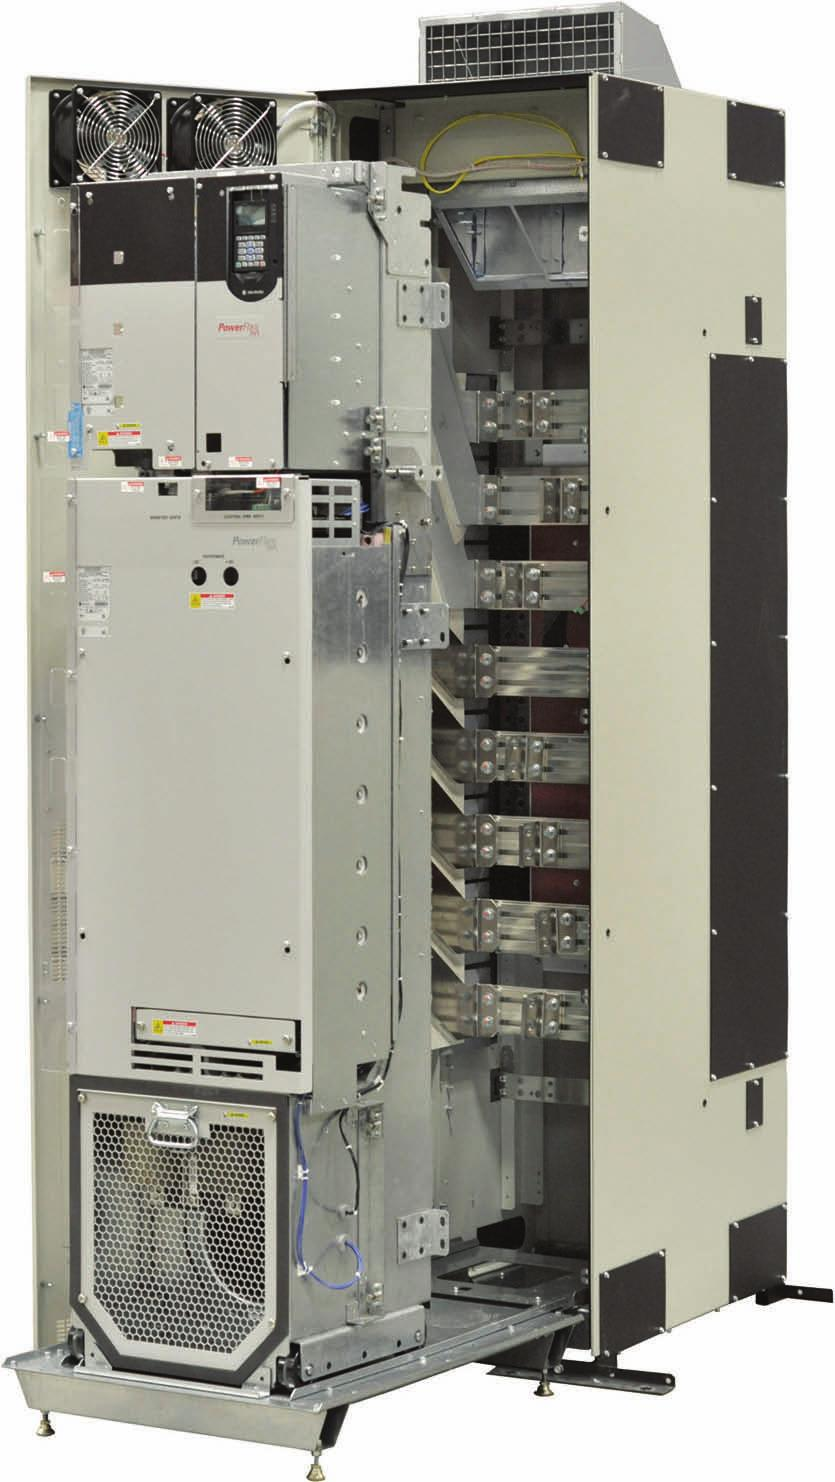 Powerflex 750 Series Ac Drives Pdf 753 Control Wiring Diagram Power Stays Connected While Unit Is Rolled Out Adjustable Terminals Provide Flexibility For Preferences